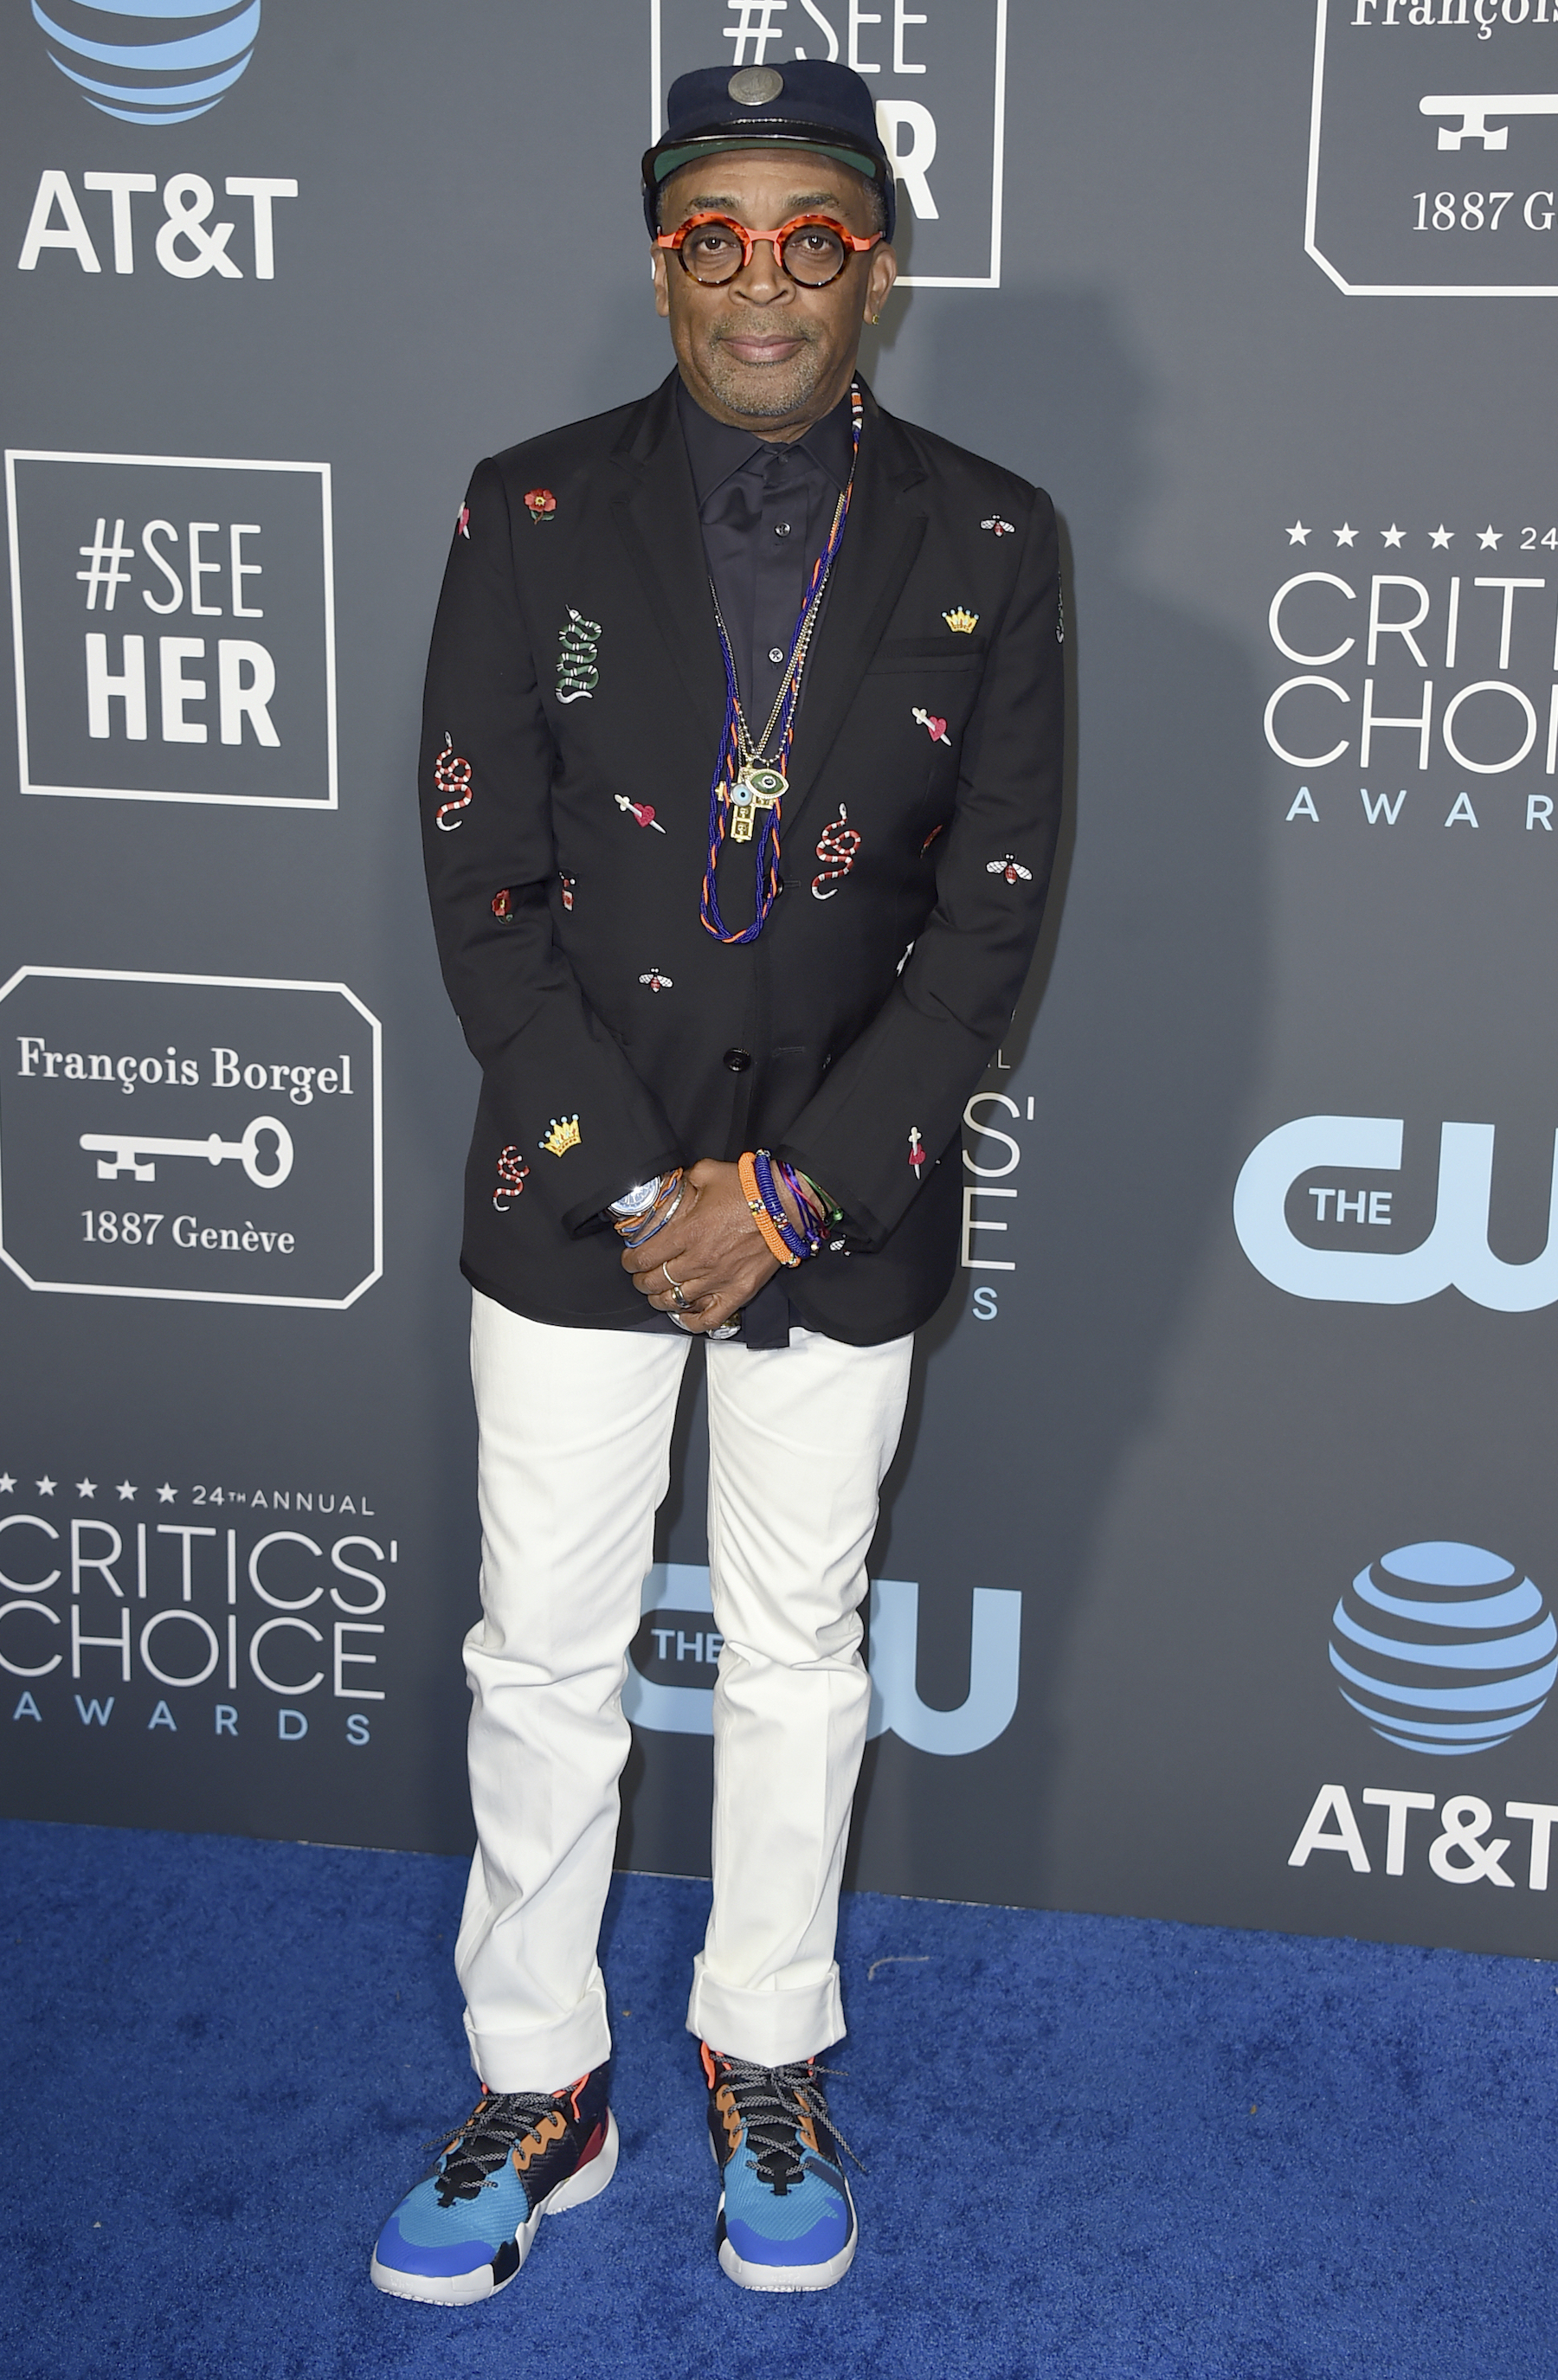 <div class='meta'><div class='origin-logo' data-origin='AP'></div><span class='caption-text' data-credit='Jordan Strauss/Invision/AP'>Spike Lee arrives at the 24th annual Critics' Choice Awards on Sunday, Jan. 13, 2019, at the Barker Hangar in Santa Monica, Calif.</span></div>